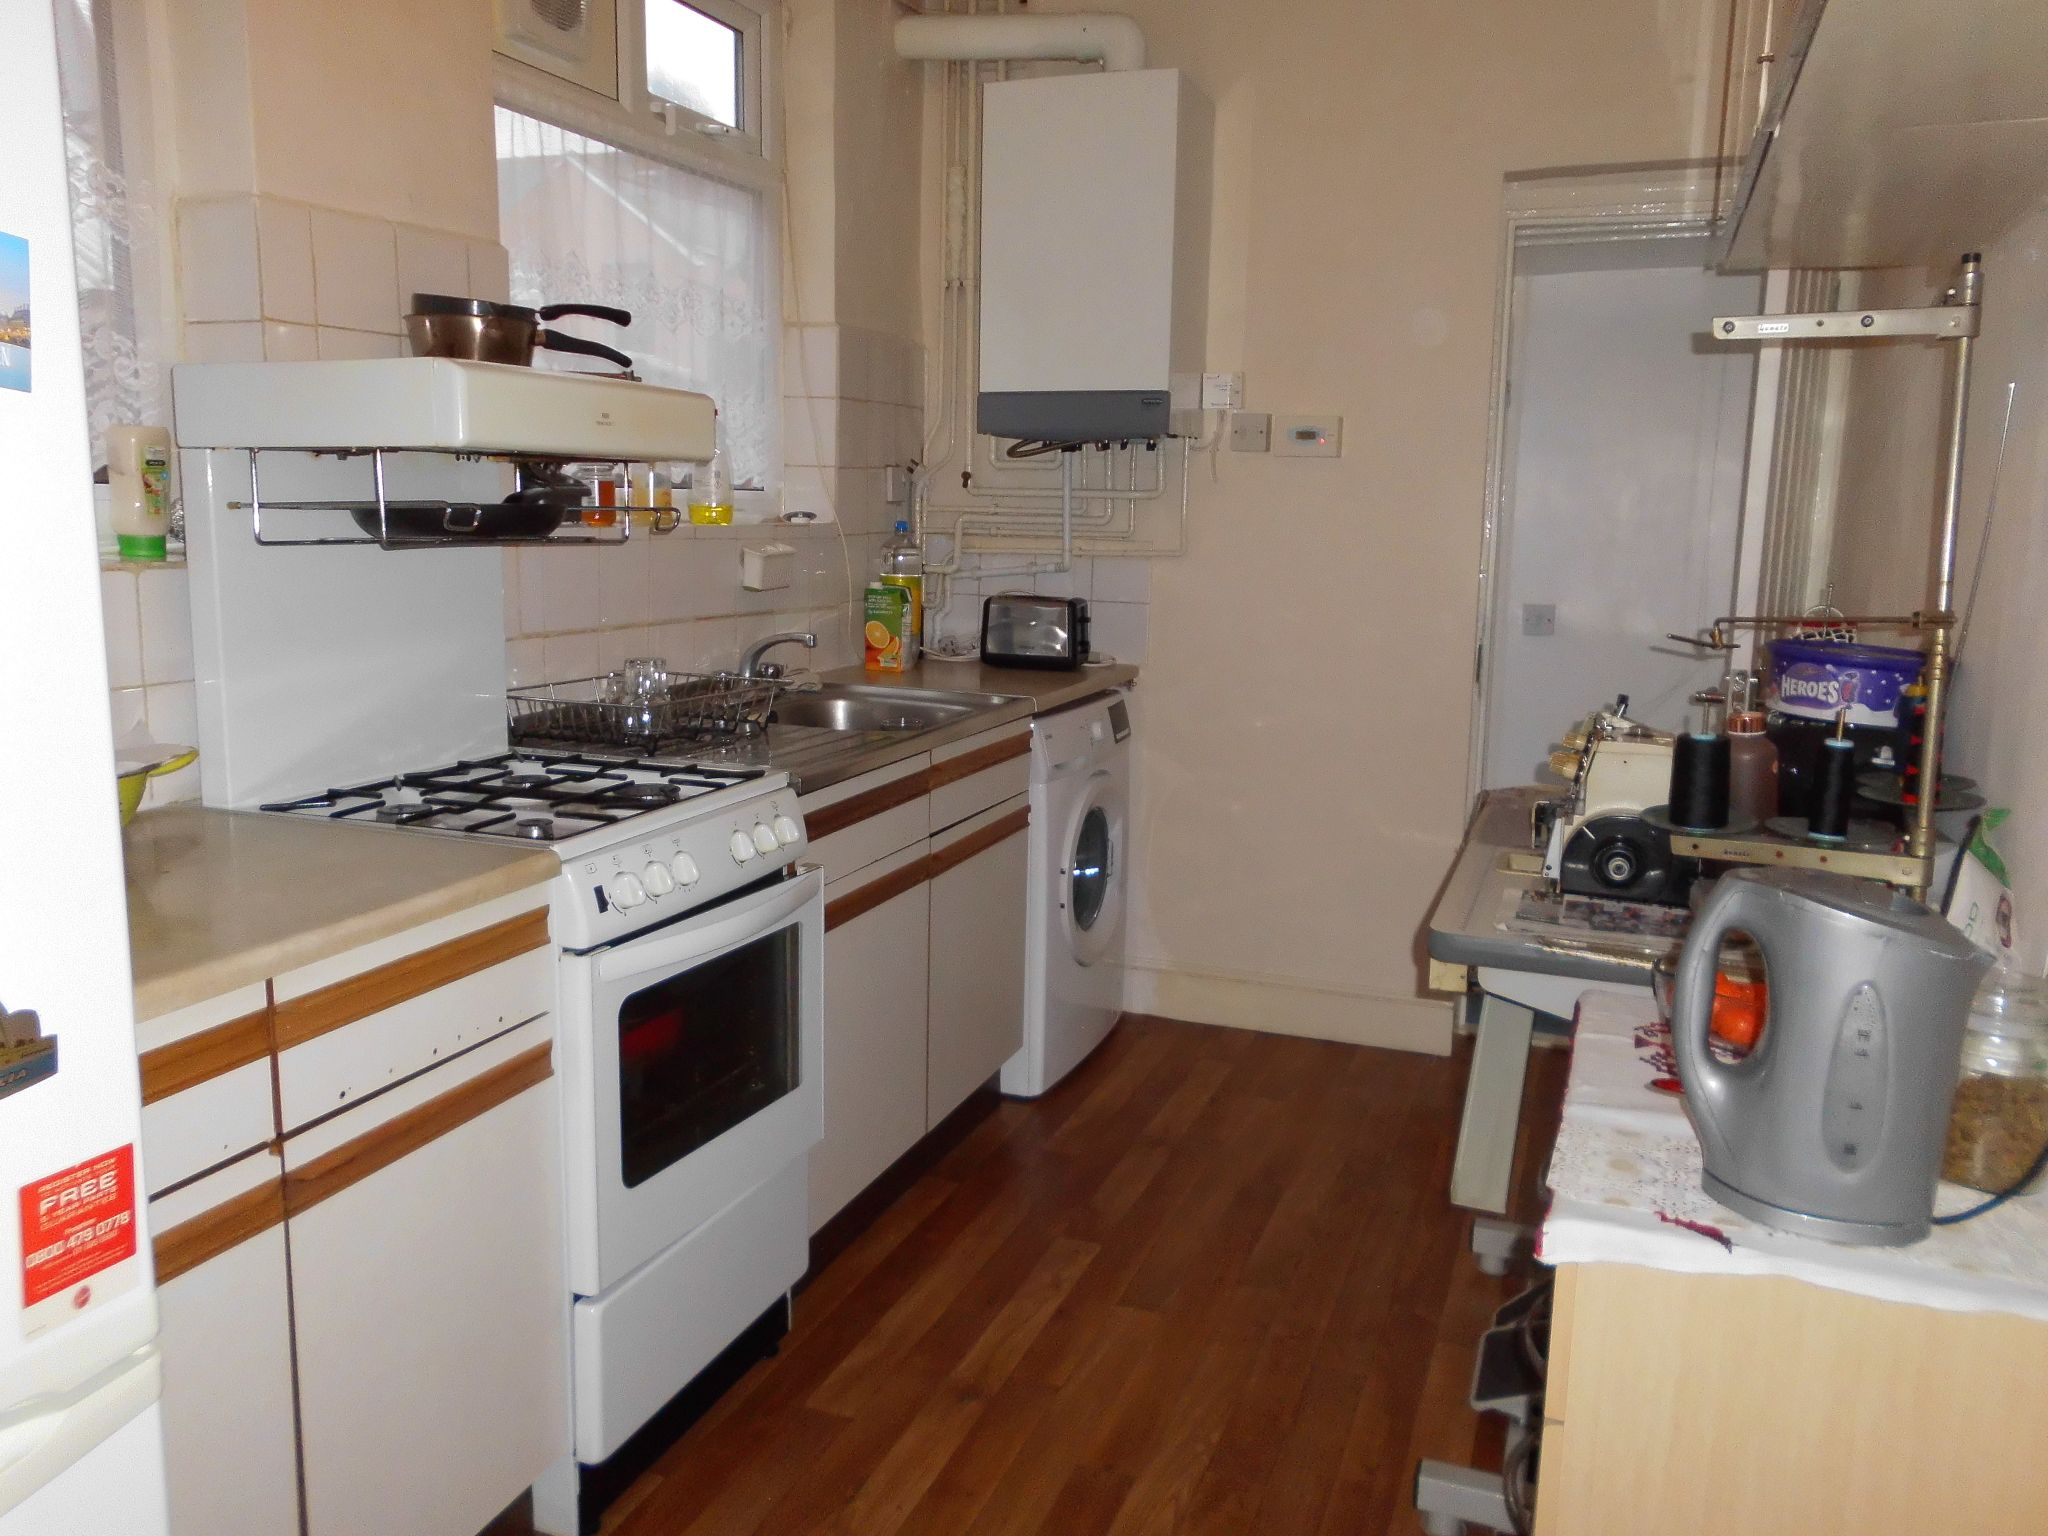 3 bedroom mid terraced house SSTC in Leicester - Photograph 6.